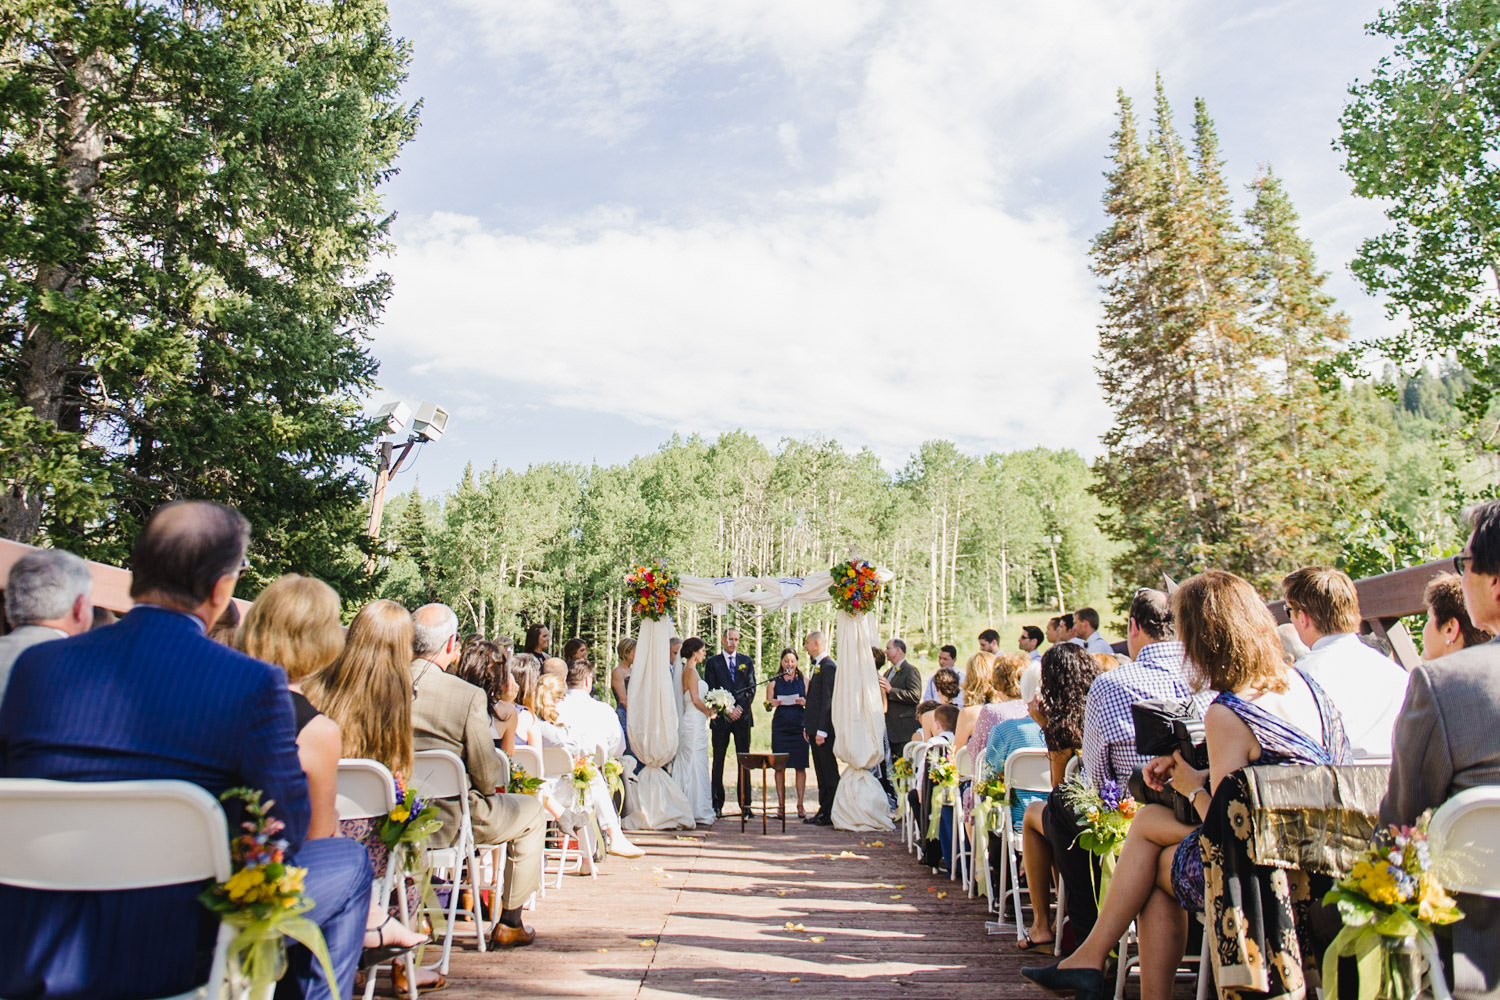 Red Pine Lodge bride and groom ceremony wedding photo